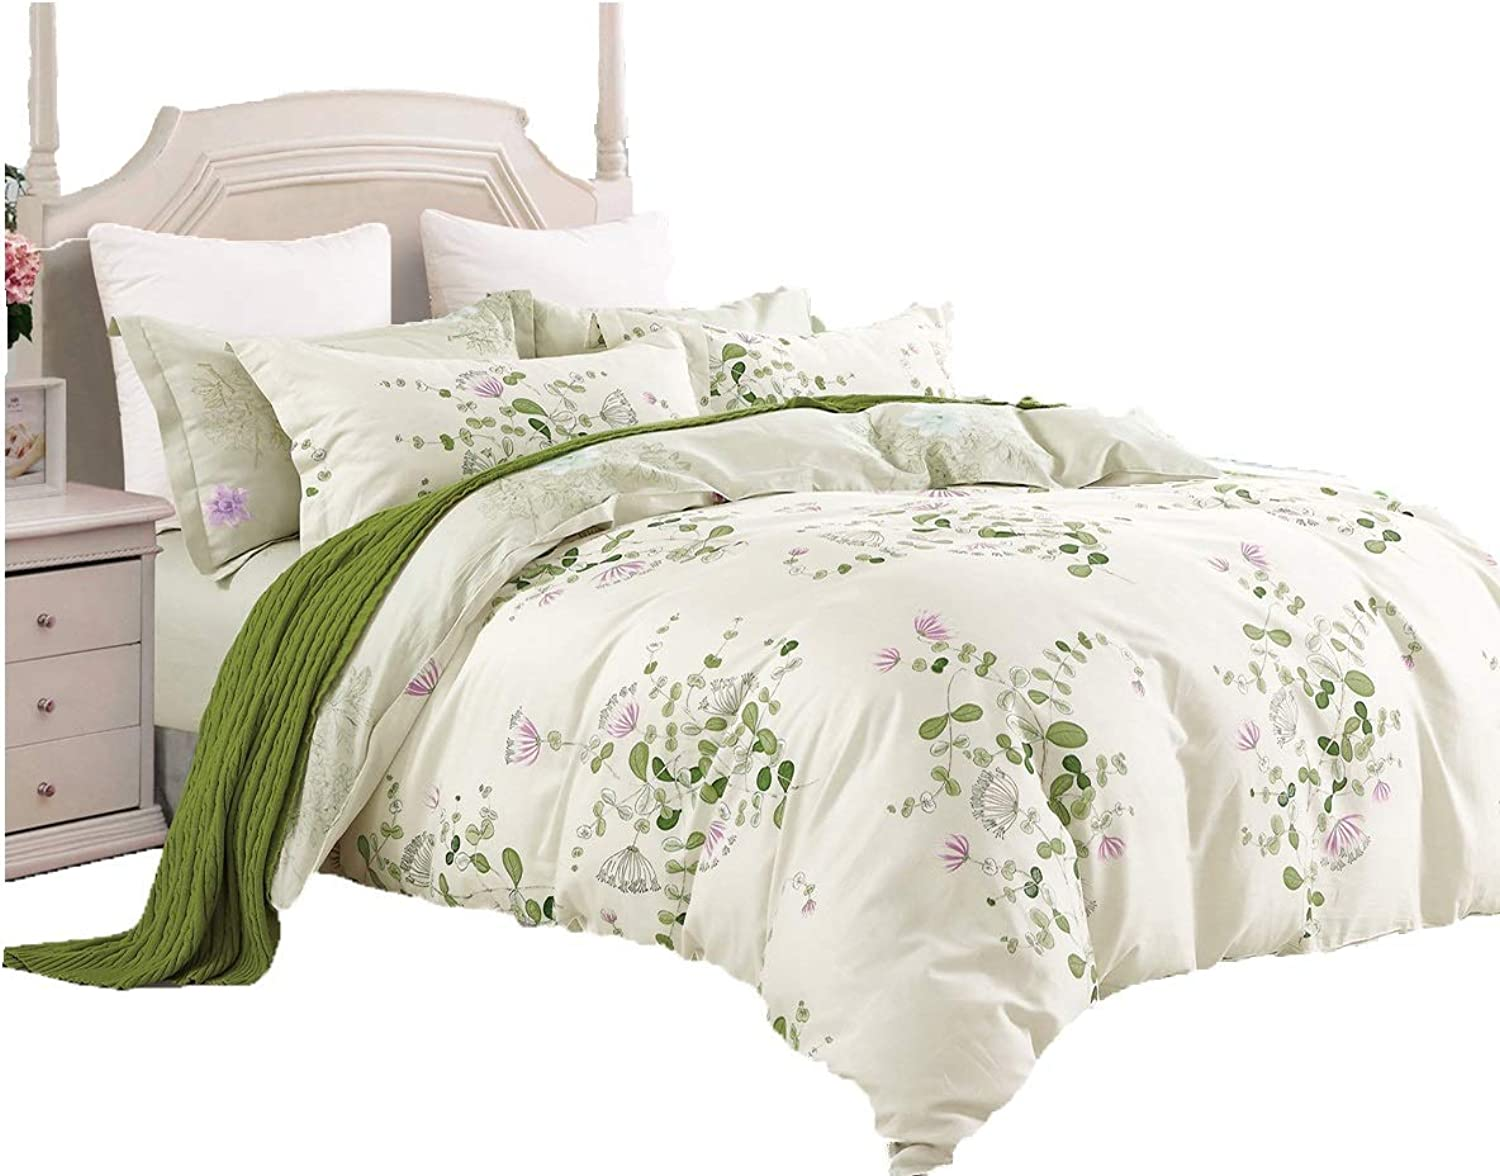 Swanson Beddings Graceful and Reversible Floral Print 3-Piece 100% Cotton Bedding Set  Duvet Cover and Two Pillow Shams (Queen)